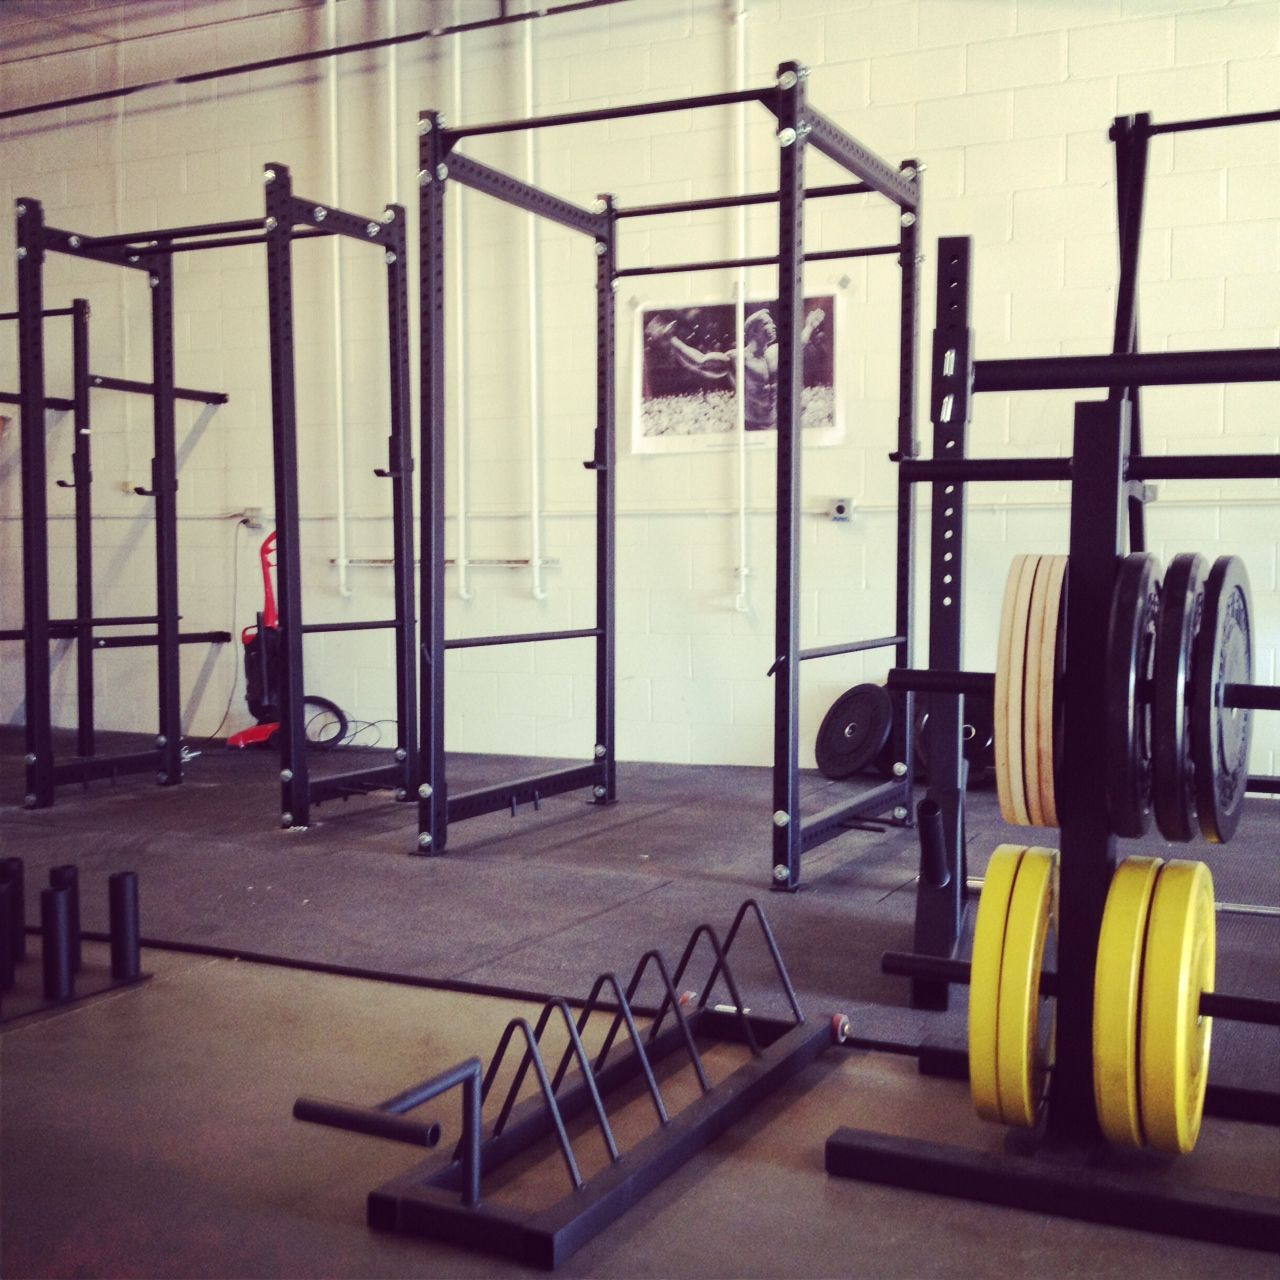 Rack city repfitnessequip warehouse gym and